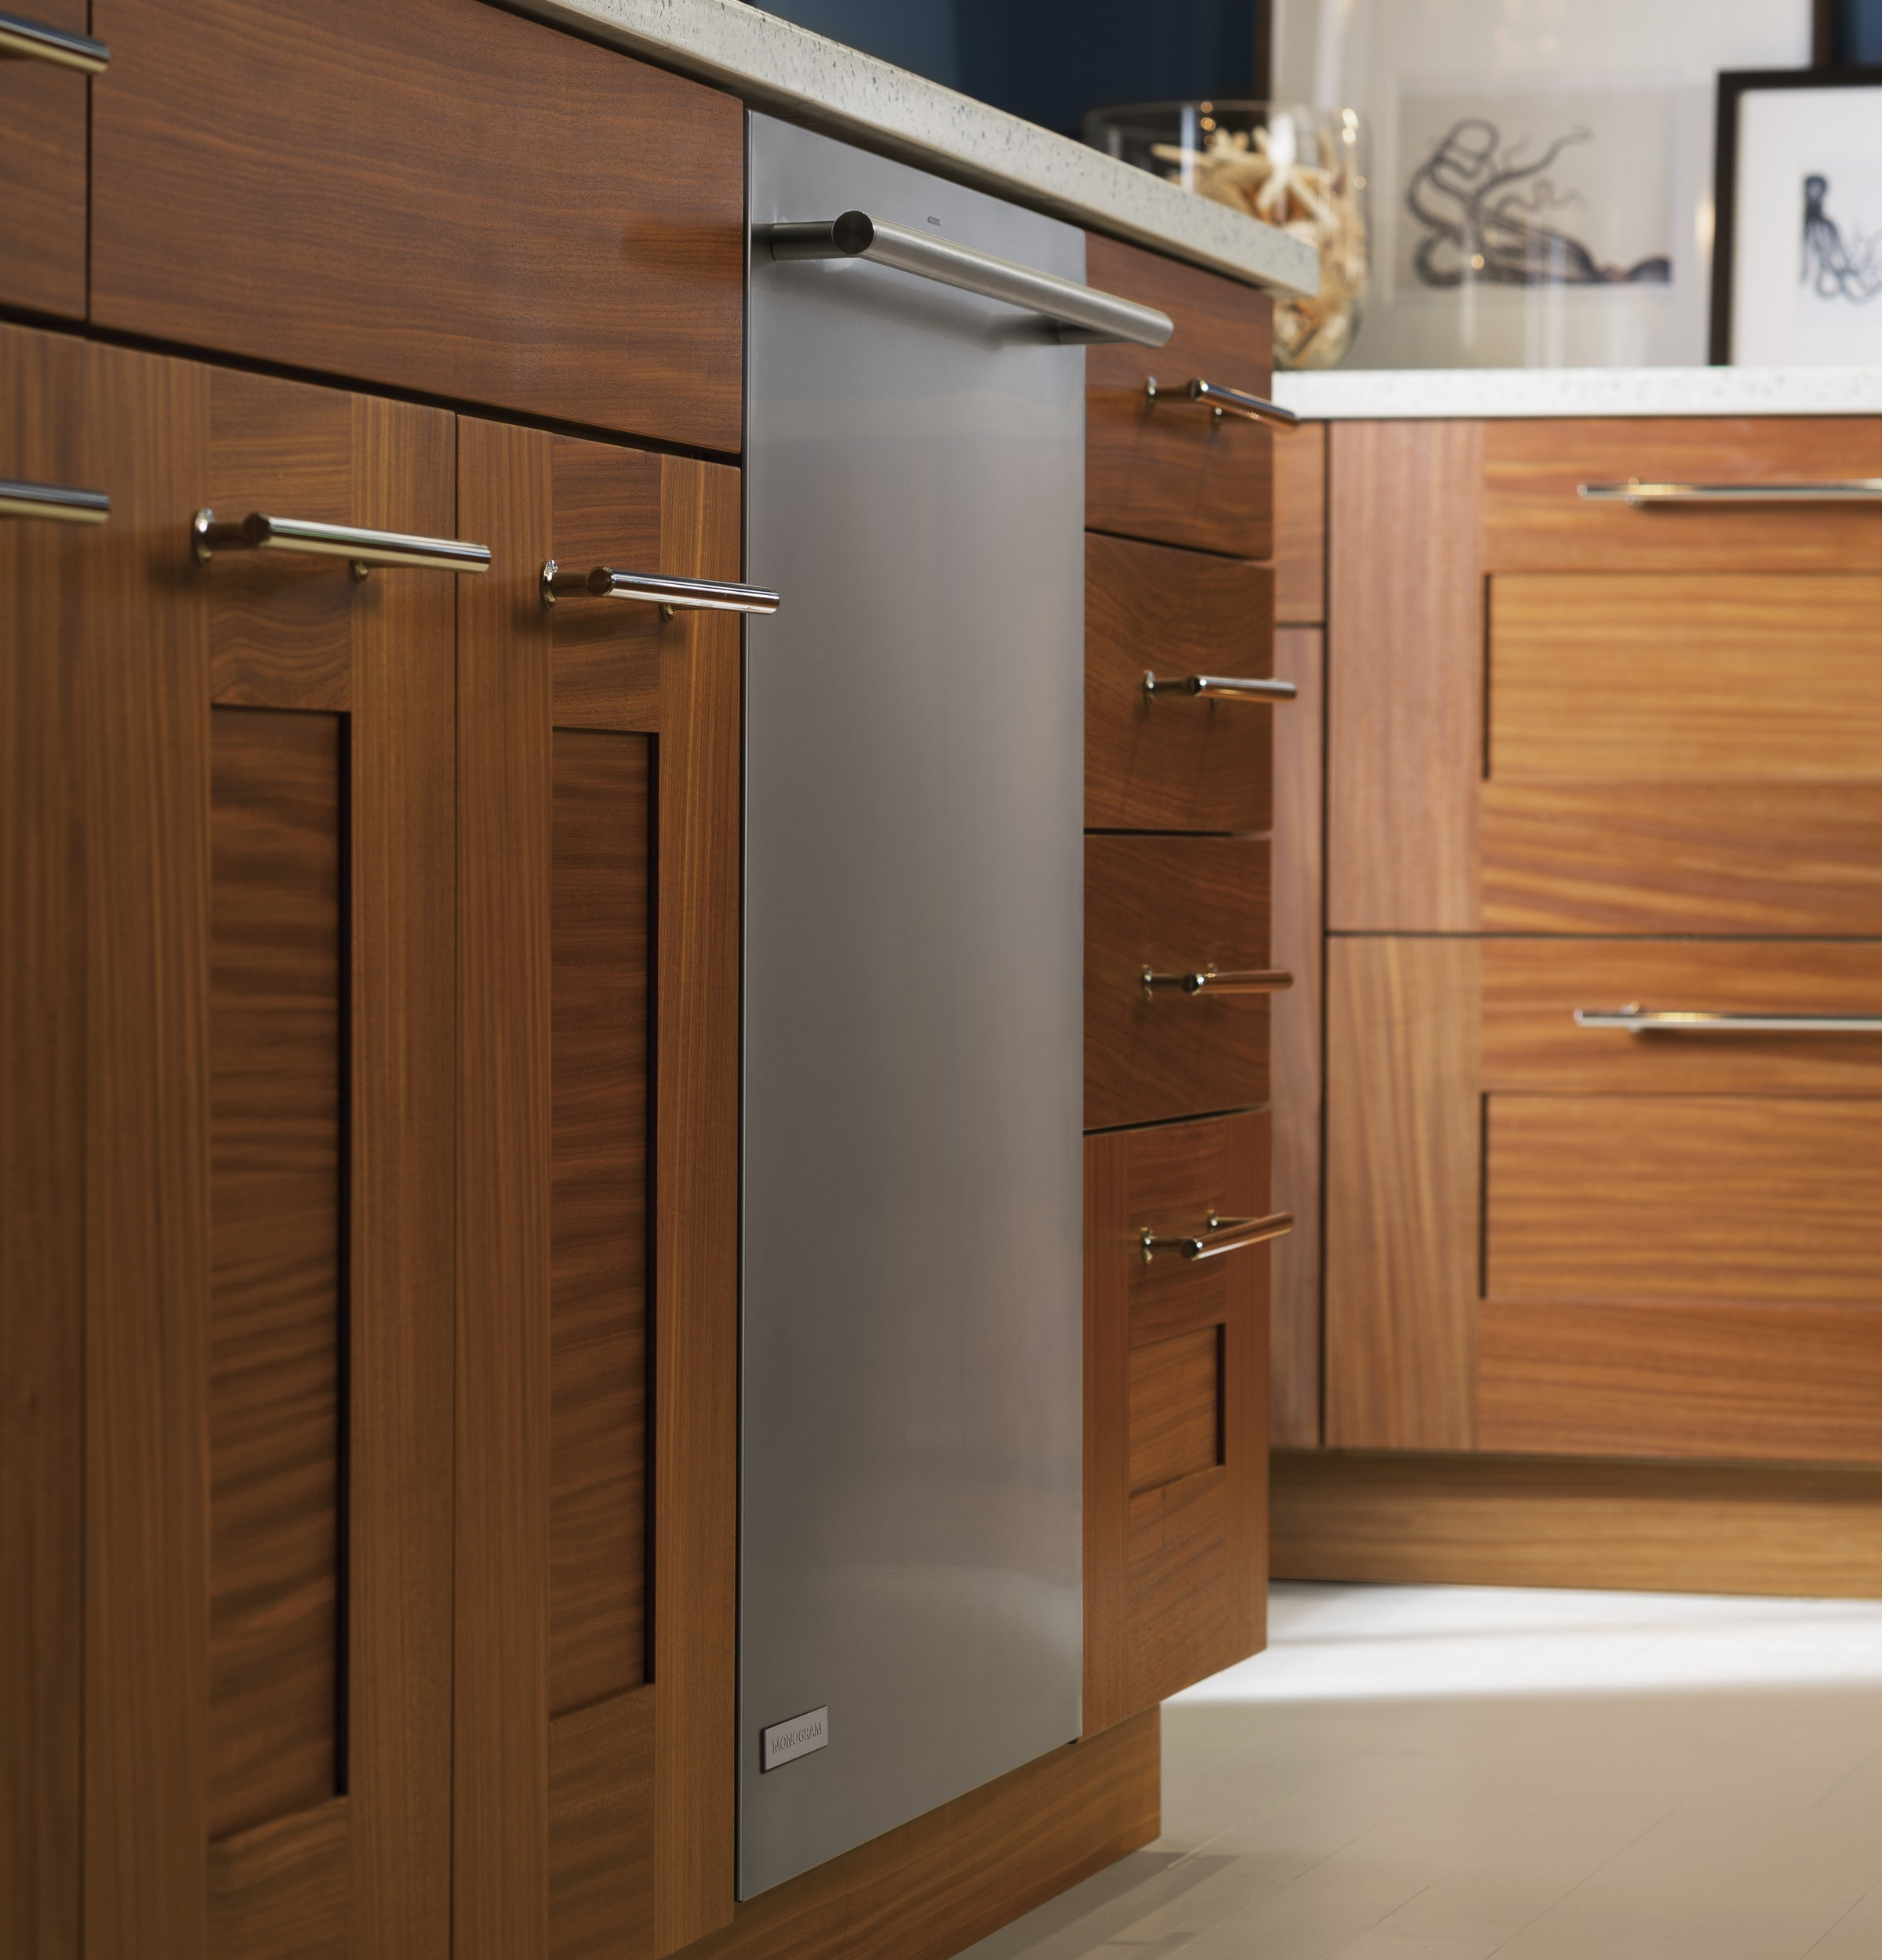 how to choose a dishwasher 2016